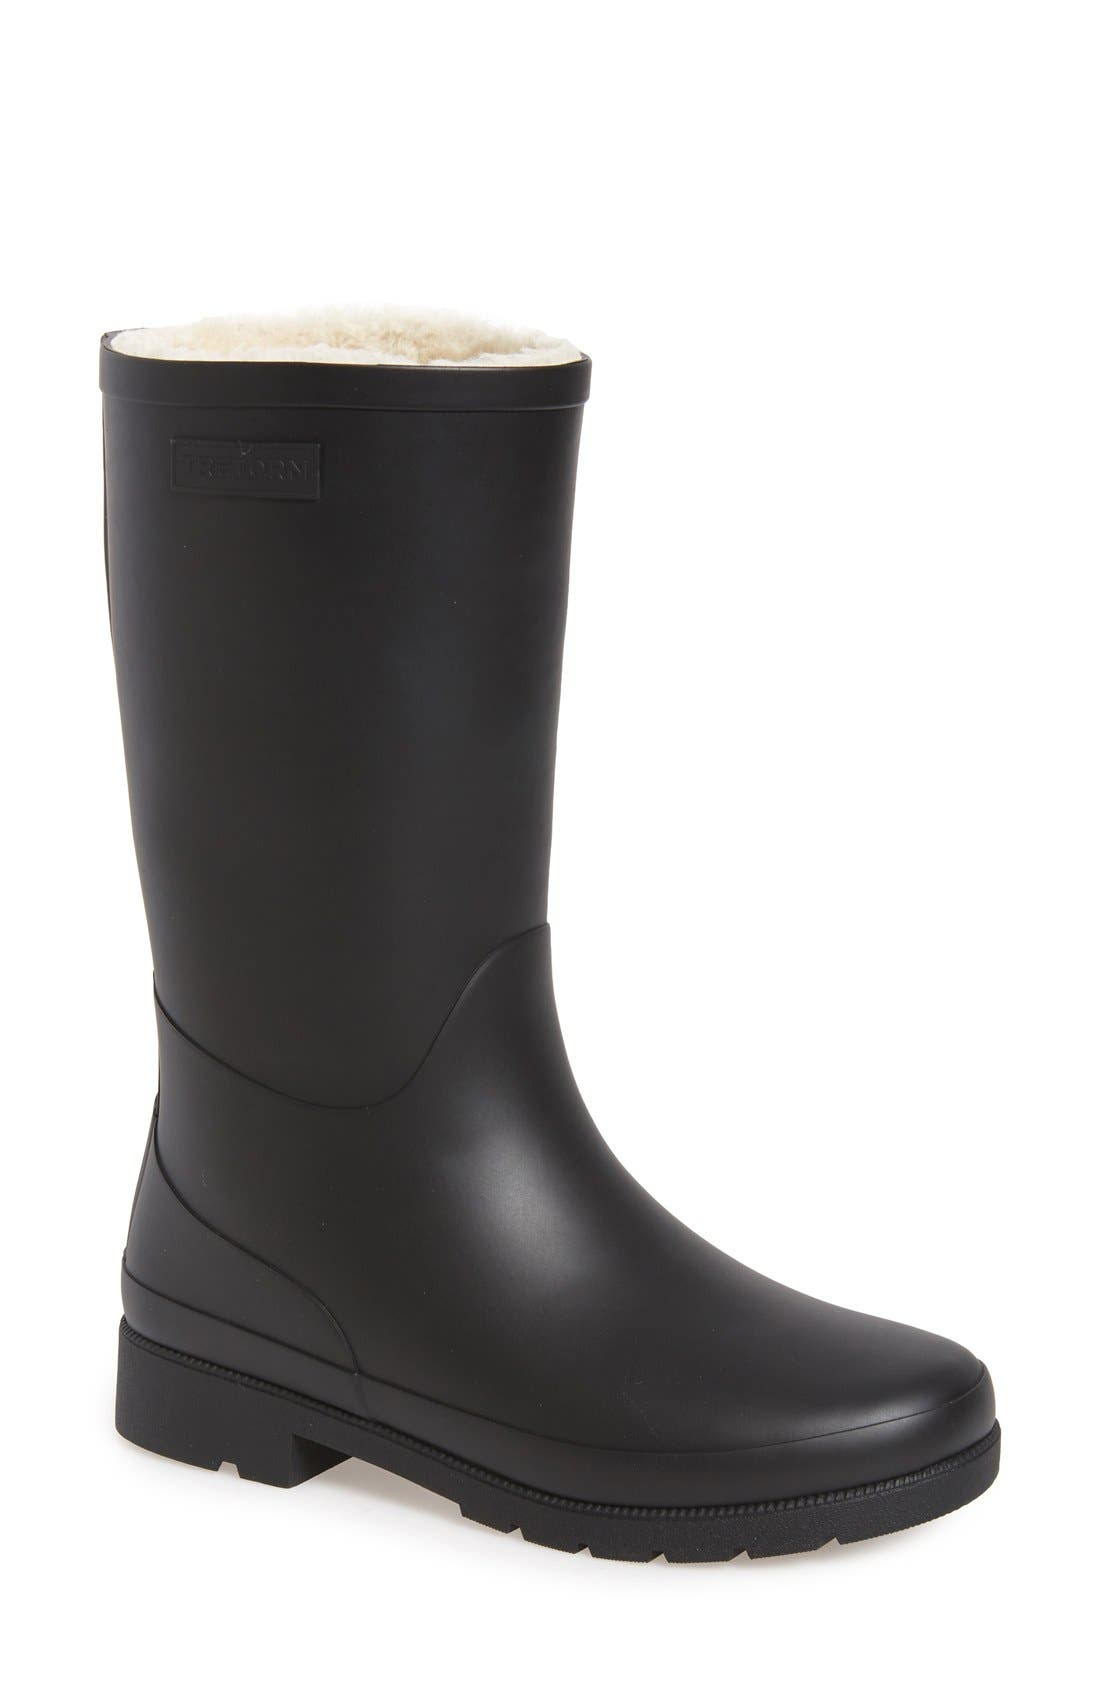 TRETORN 'Libby' Rain Boot, Main, color, 001